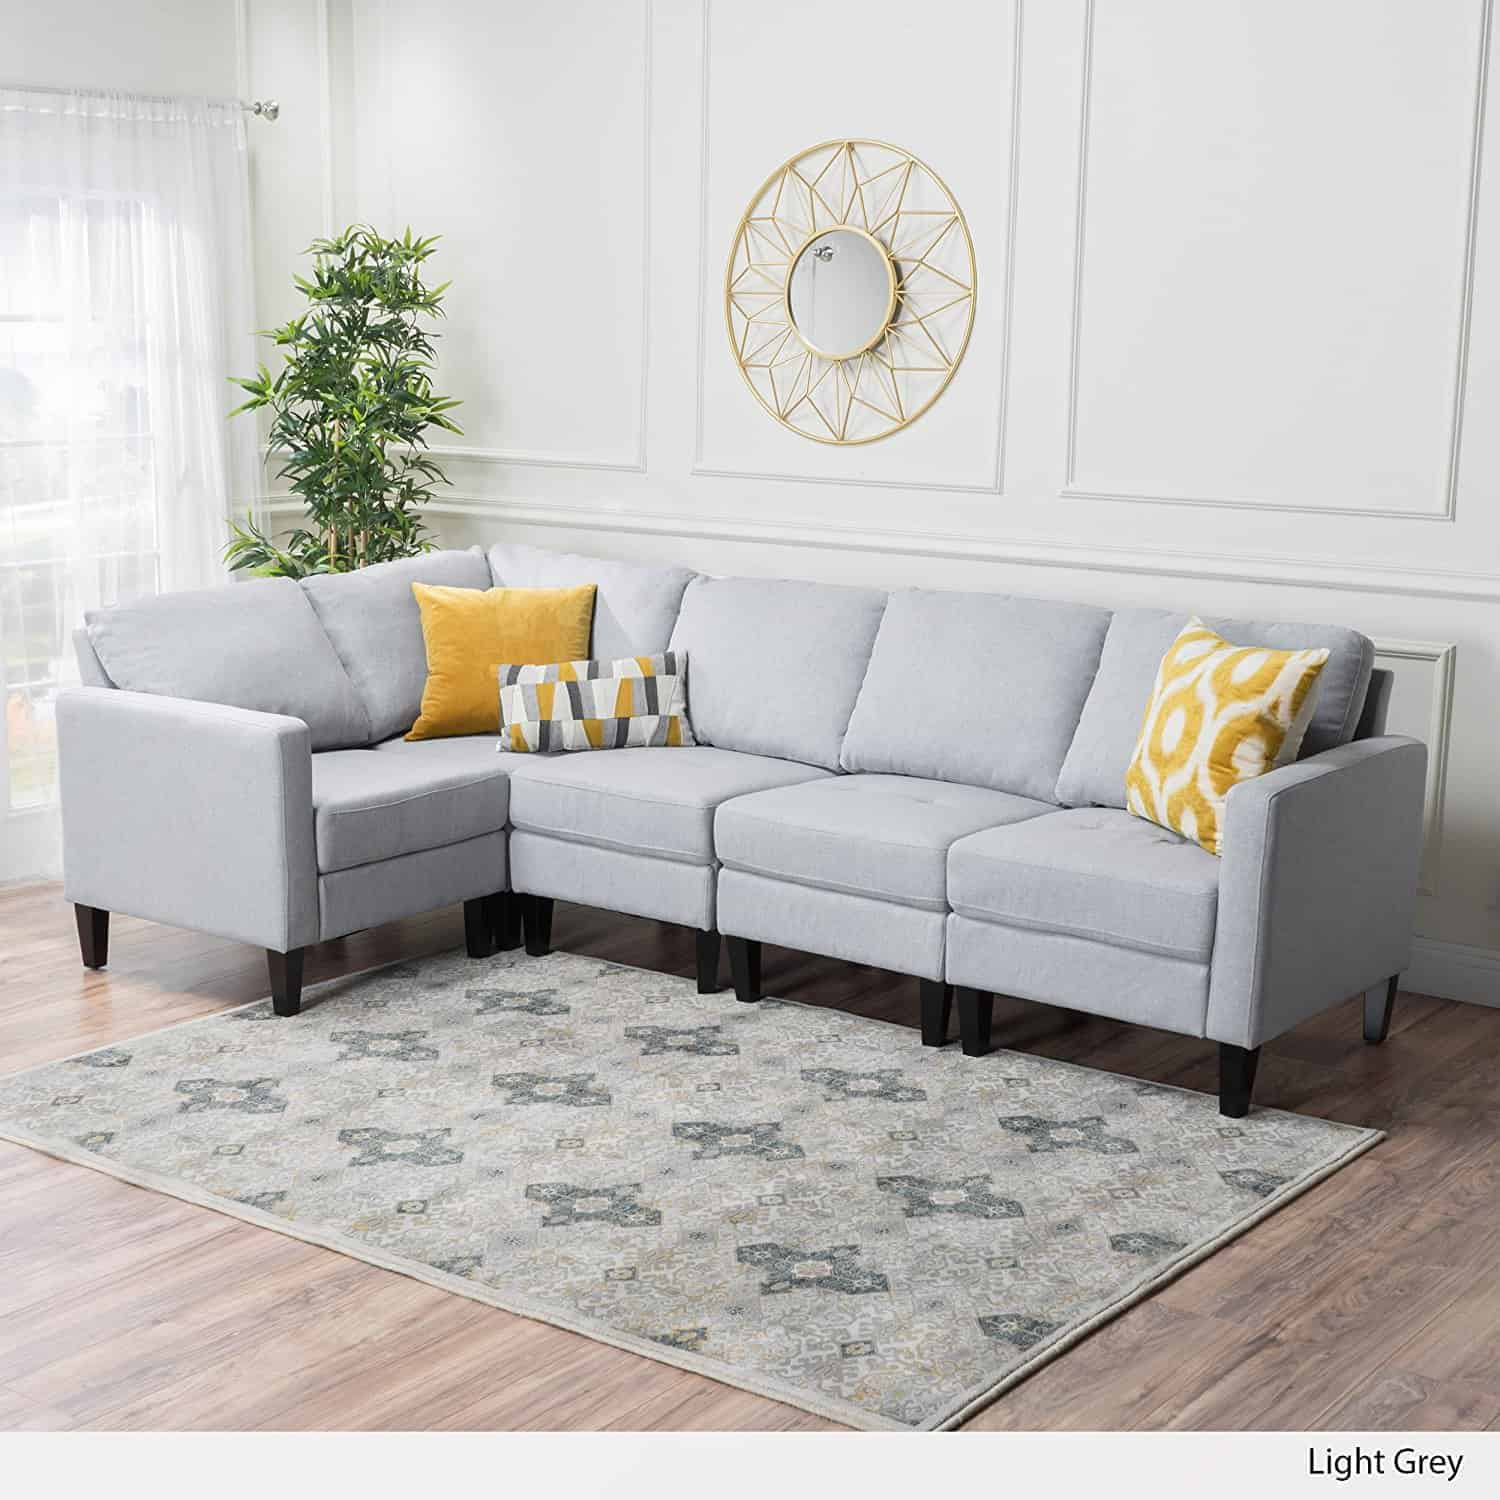 sofa formidable affordable ideas living sectionals sectional furniture cheap image room in